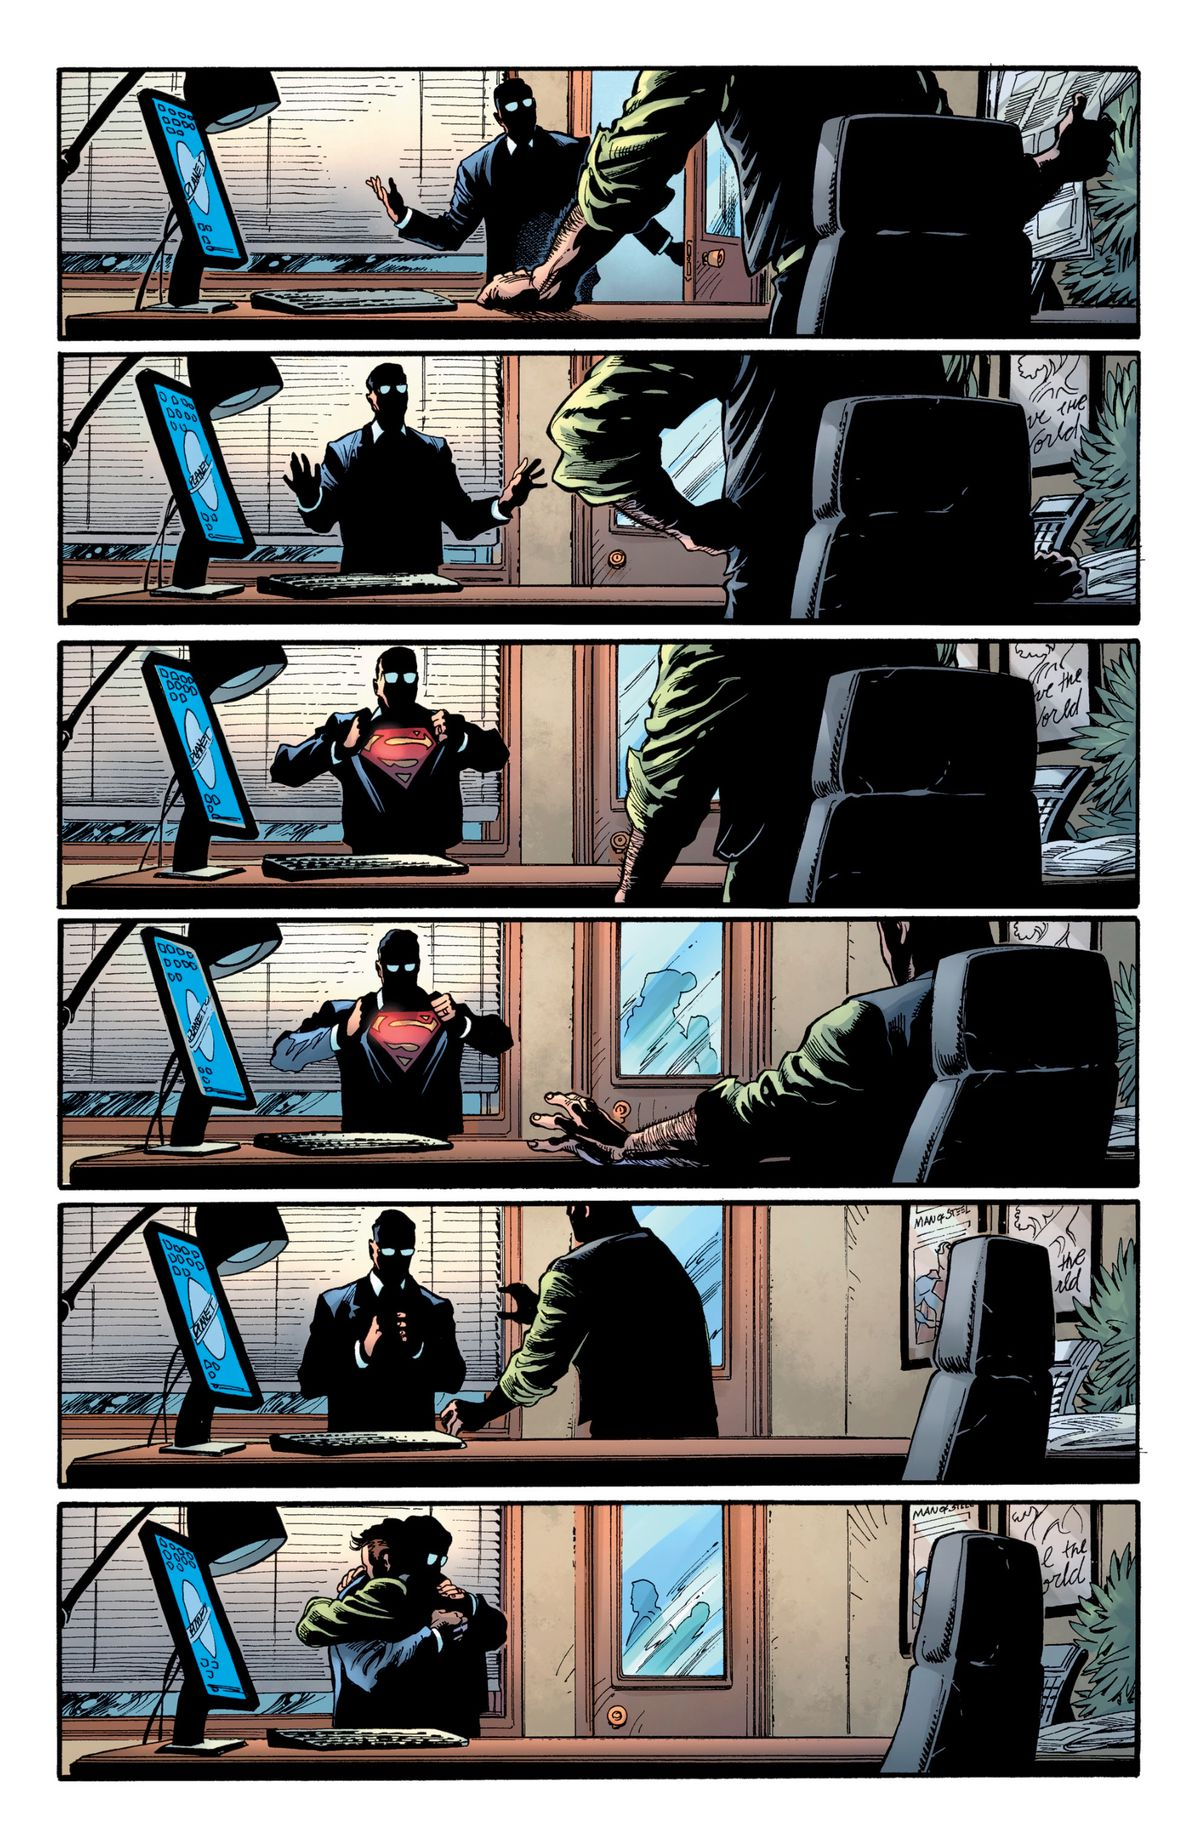 In Perry White's office, Clark Kent speaks to White, and then pulls open his shirt to reveal his Superman costume. Perry sits down, shocked. Then he crosses the room, and hugs him. The page has no words on it. Superman #18, DC Comics (2019).